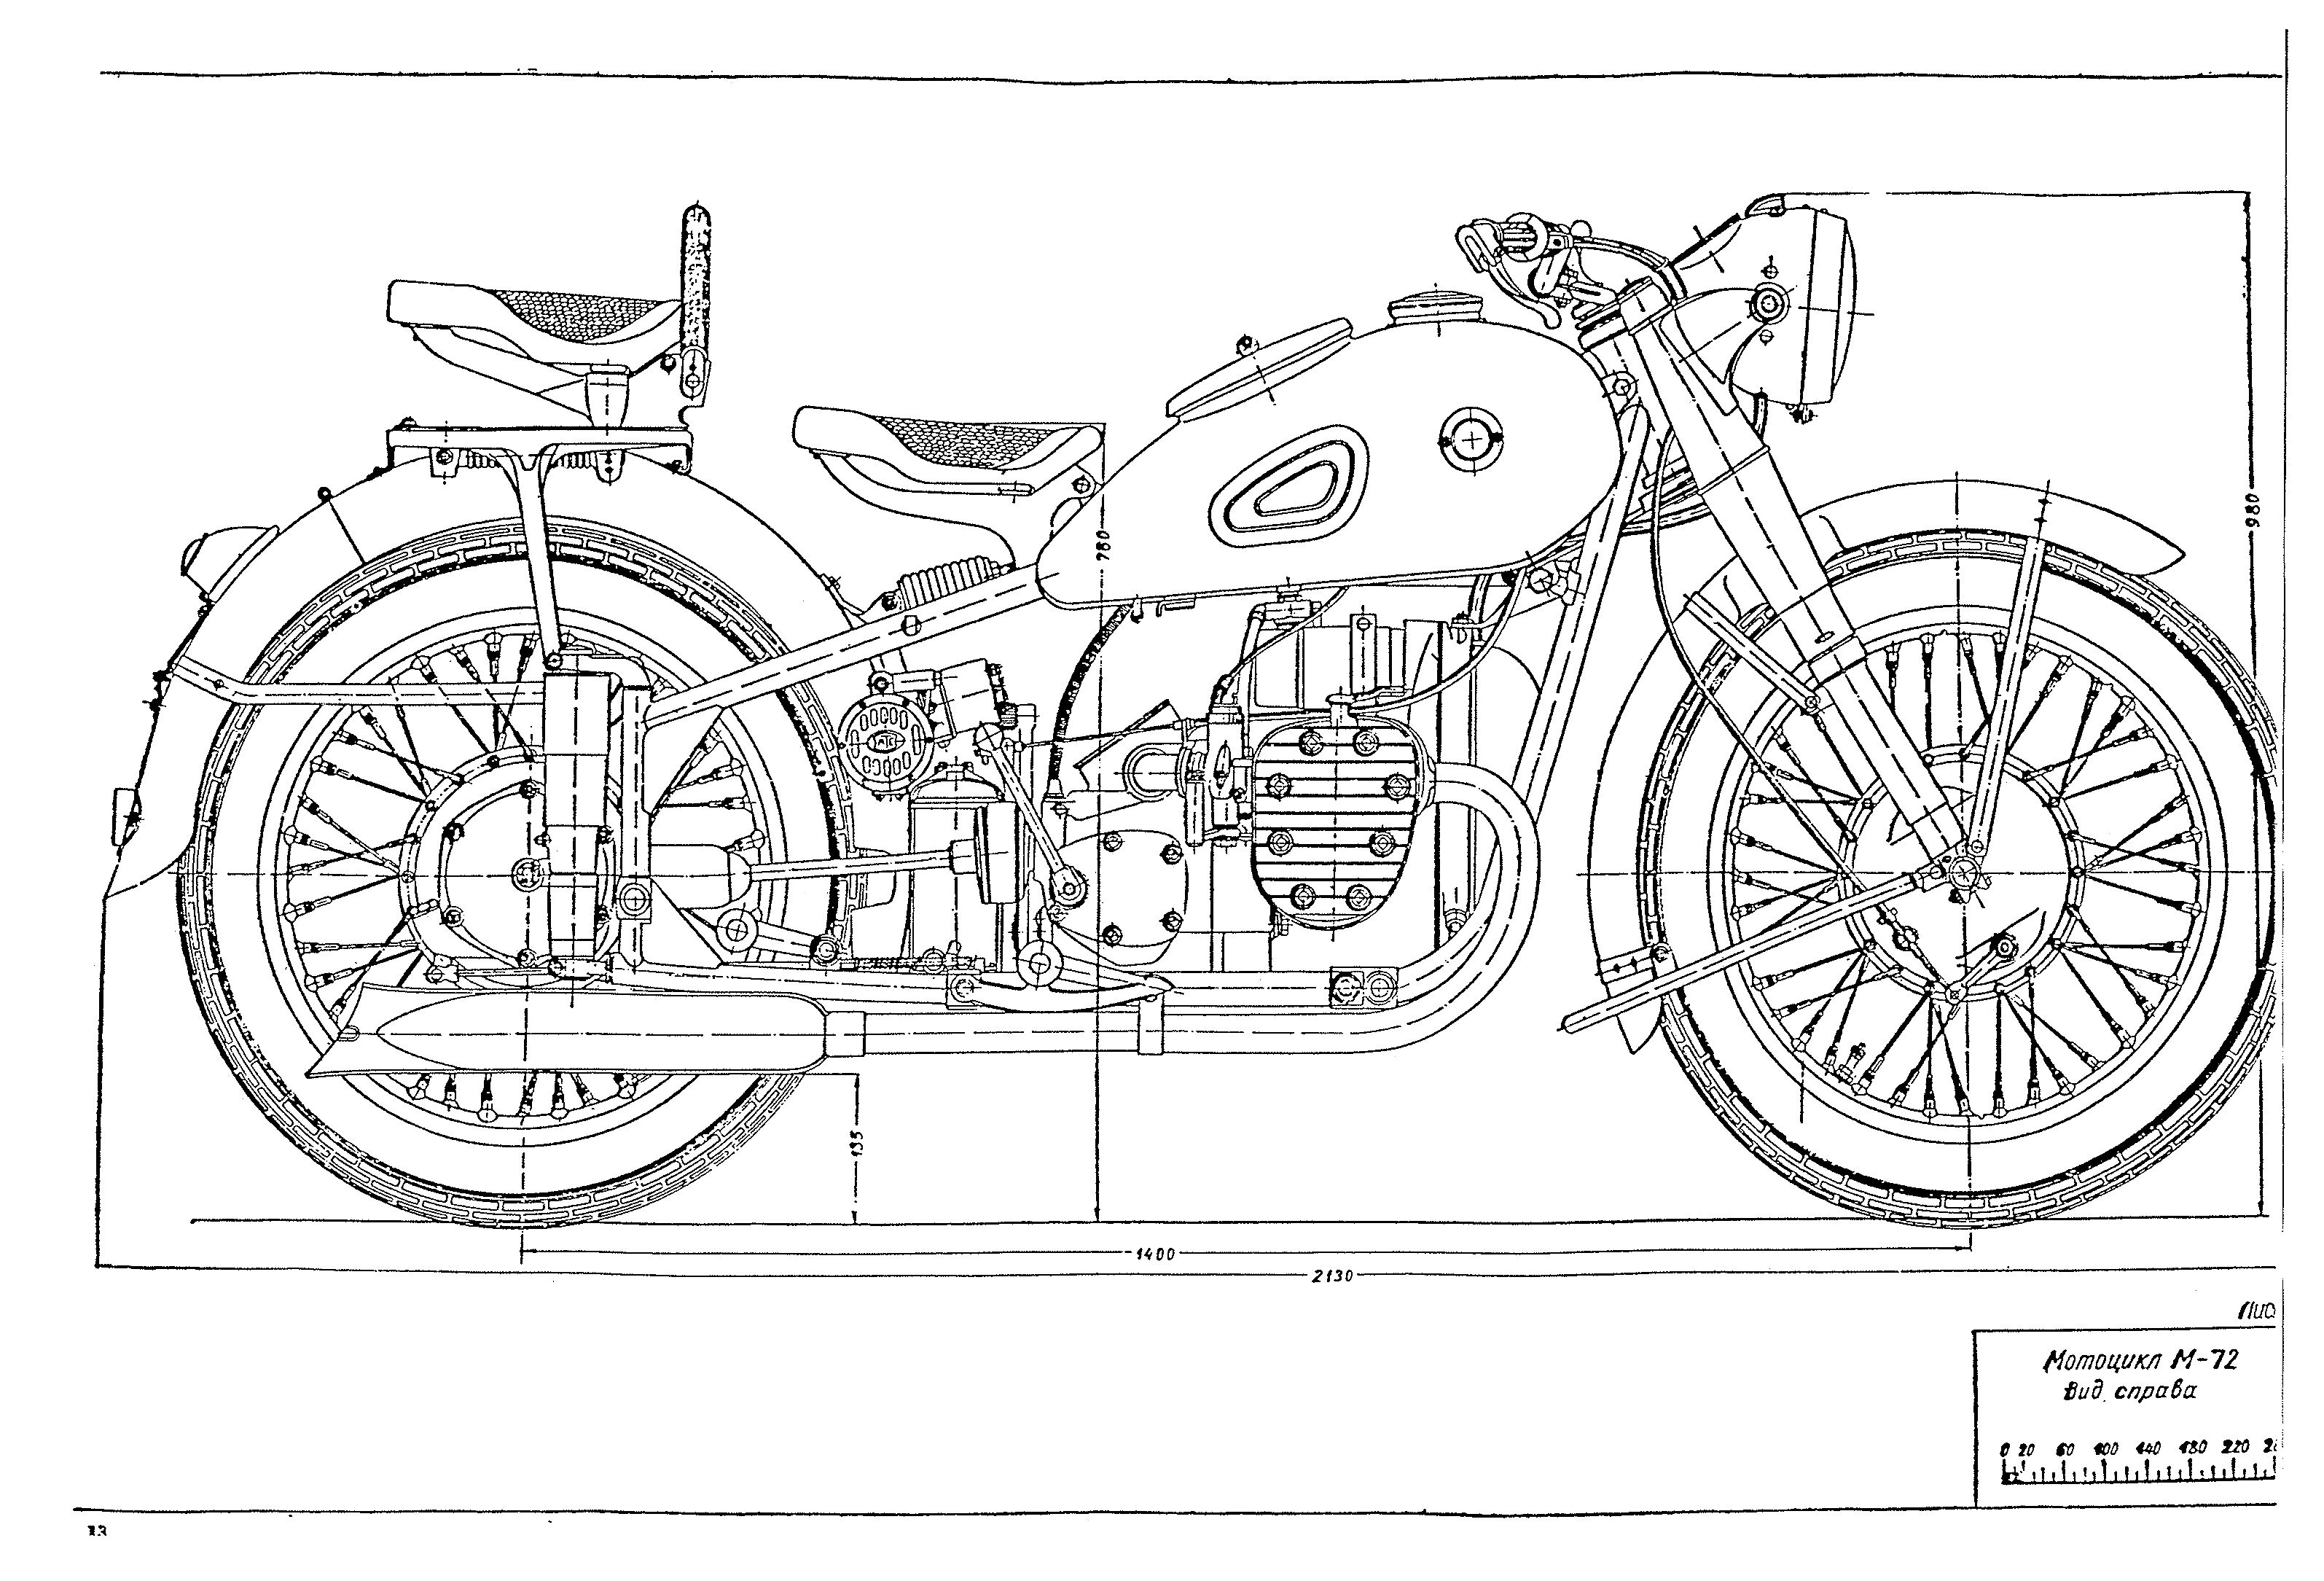 Motorcycle blueprints google search motorcycle engines and motorcycle blueprints google search malvernweather Choice Image